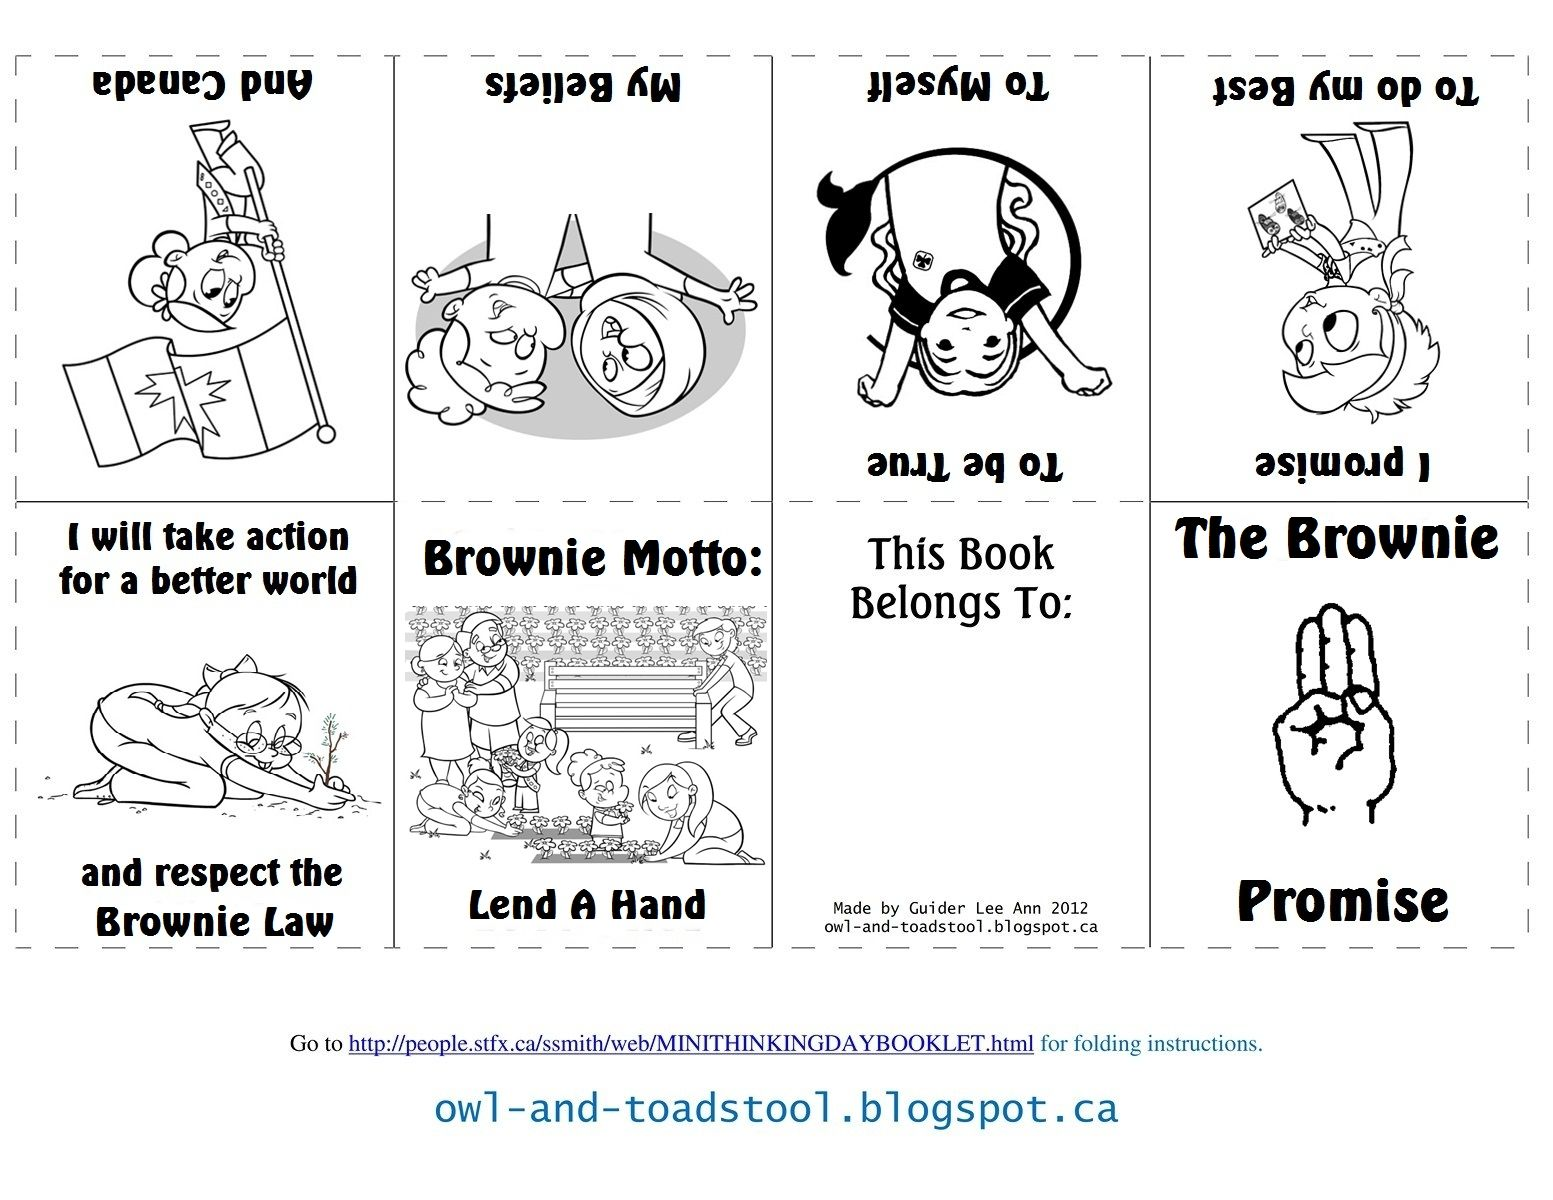 canadian brownie promise mini colouring book owl and toadstool